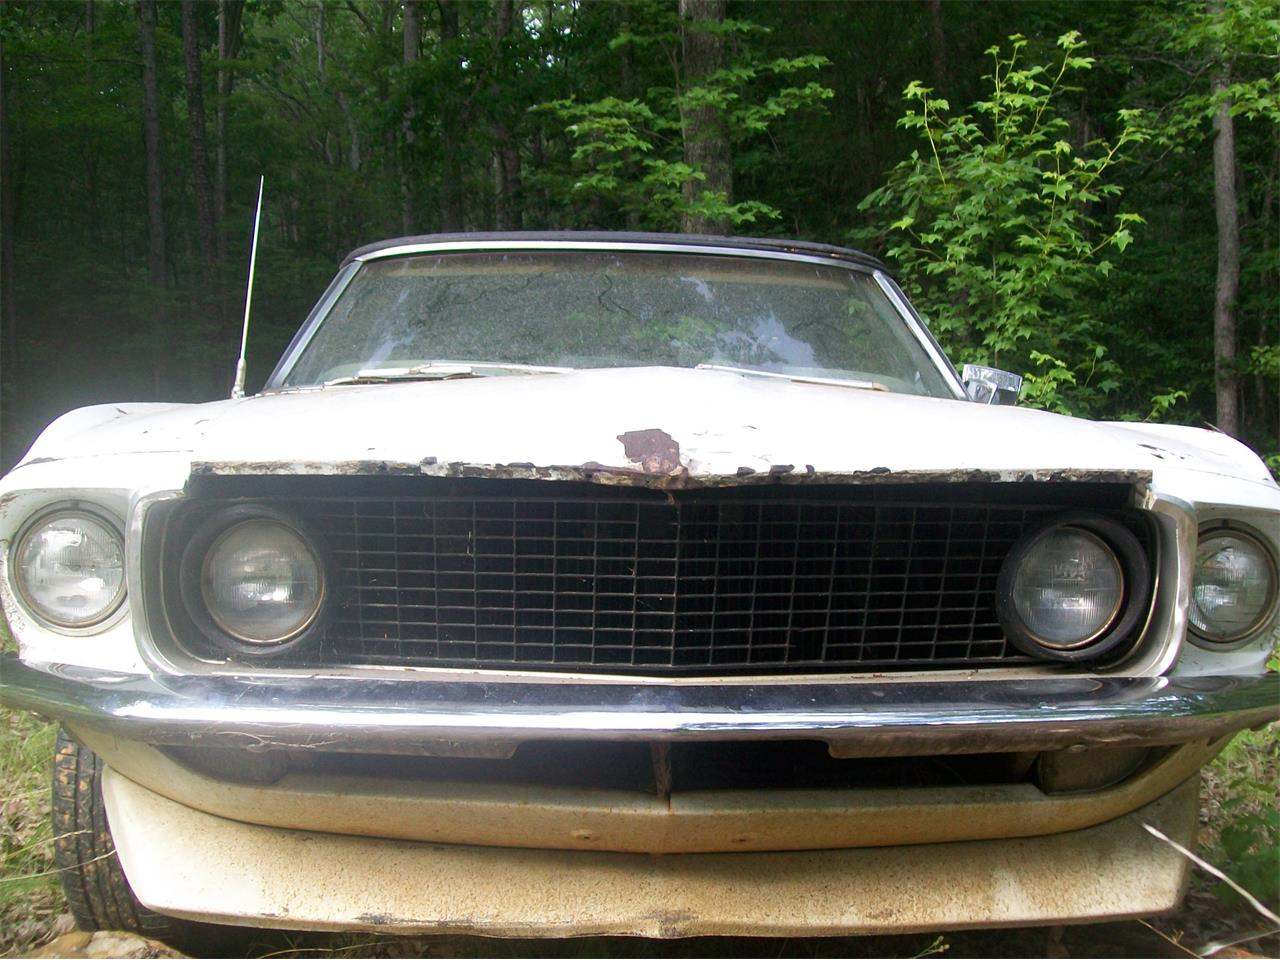 Large Picture of '69 Ford Mustang located in North Carolina - $3,000.00 Offered by a Private Seller - L75E